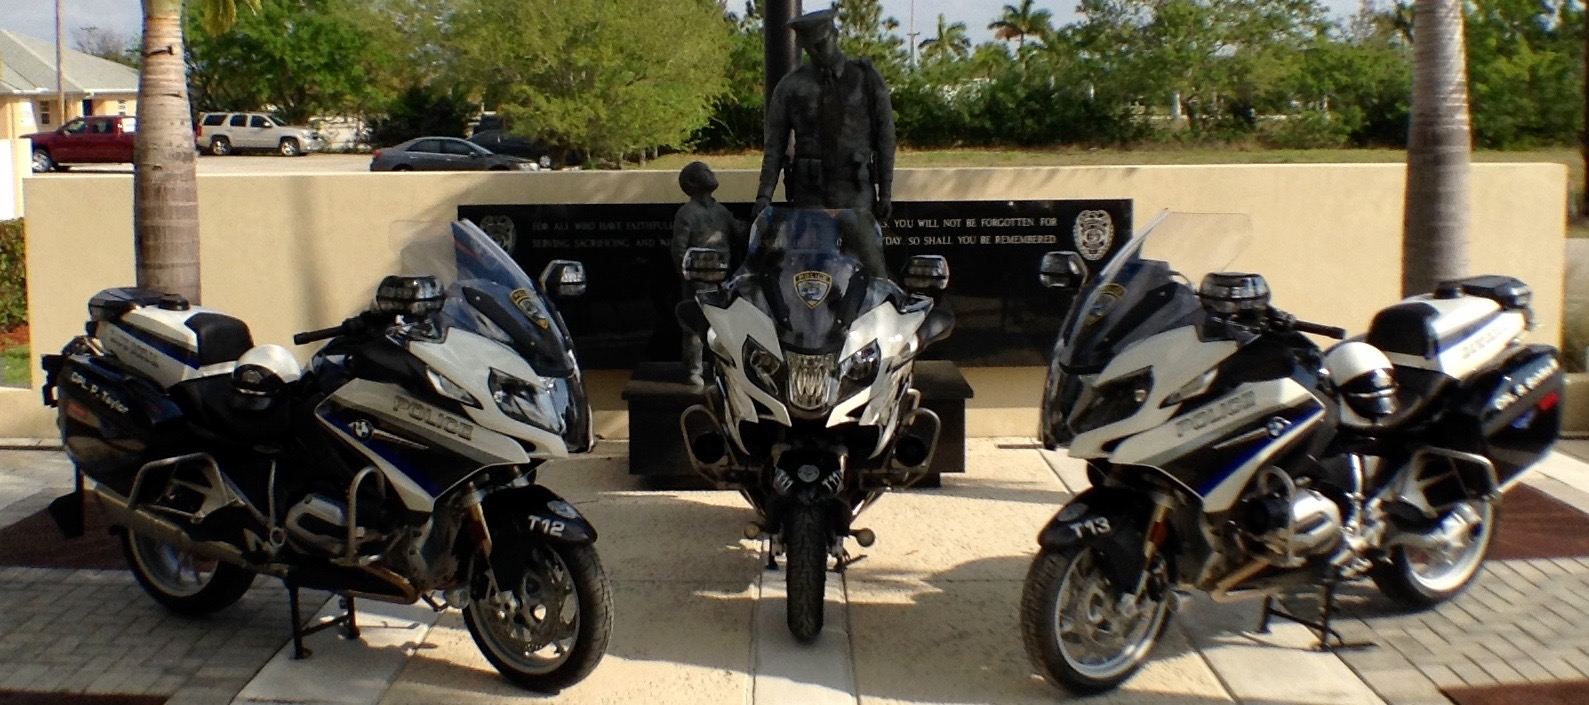 PHOTO: Today, the Cape Coral Police Departmentunveiled its new Police Motorcycle, the BMW R-1200-RT-P Authority . (Photo Courtesy of Cape Coral Police Department)